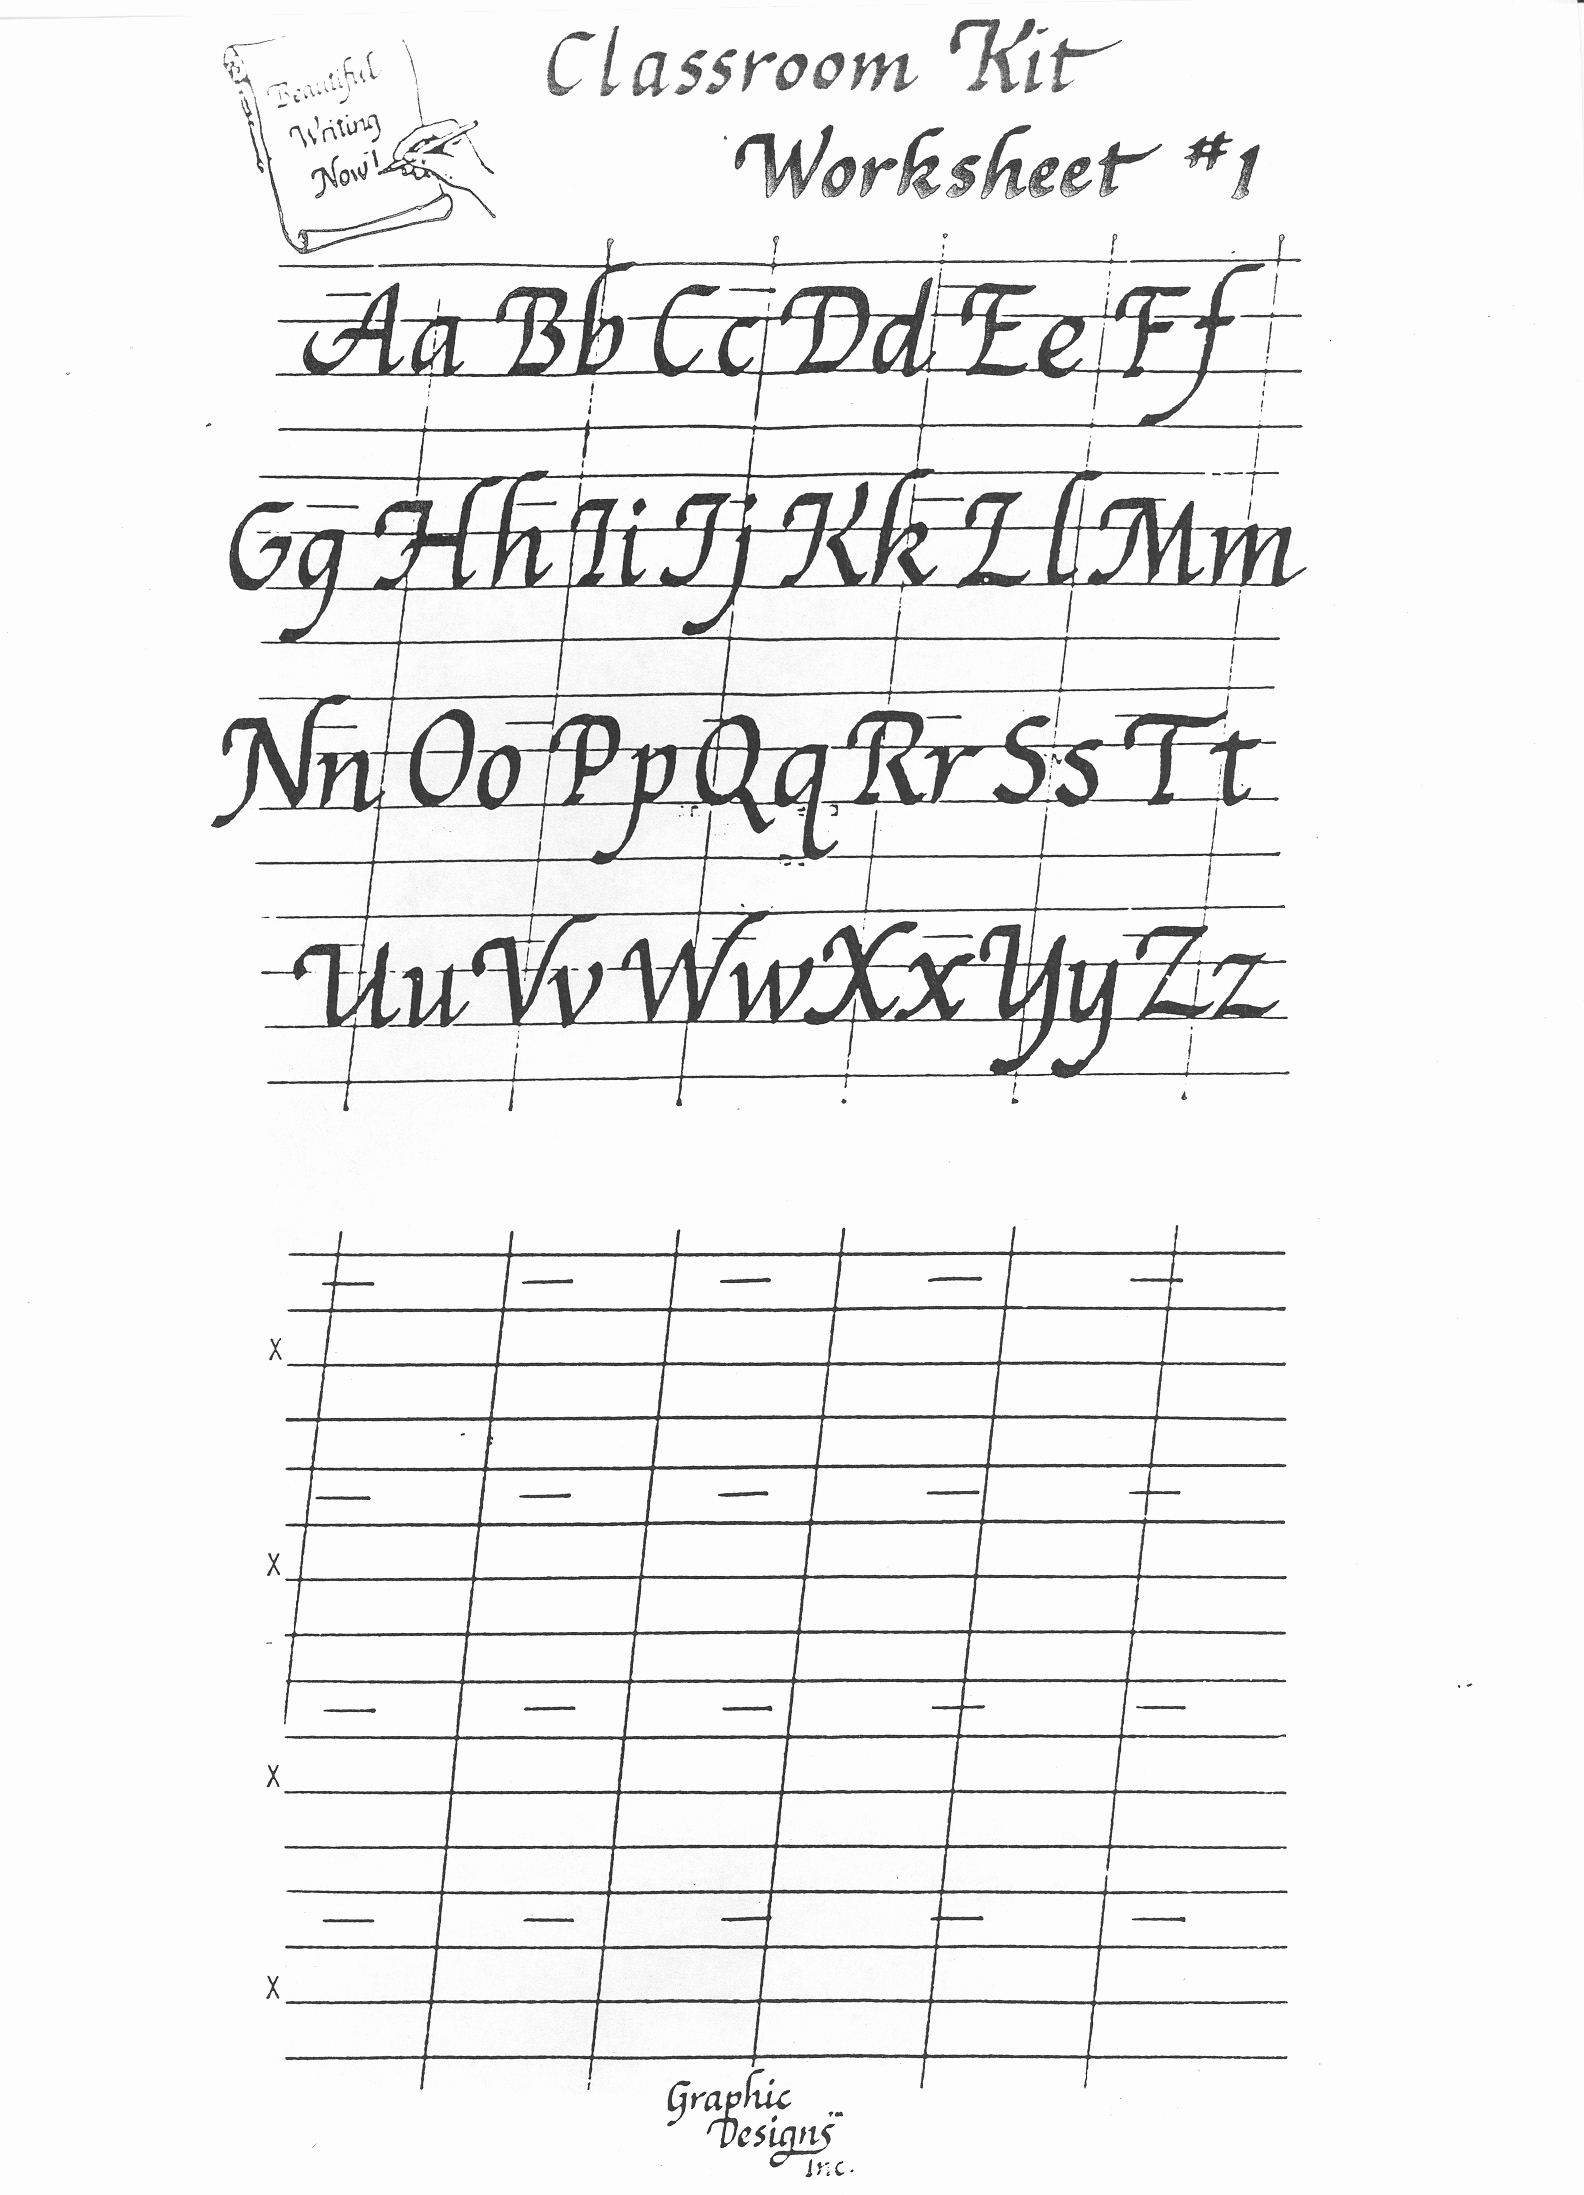 Free Calligraphy Worksheets Printable Lovely 7 Best Of Calligraphy Worksheets Printable